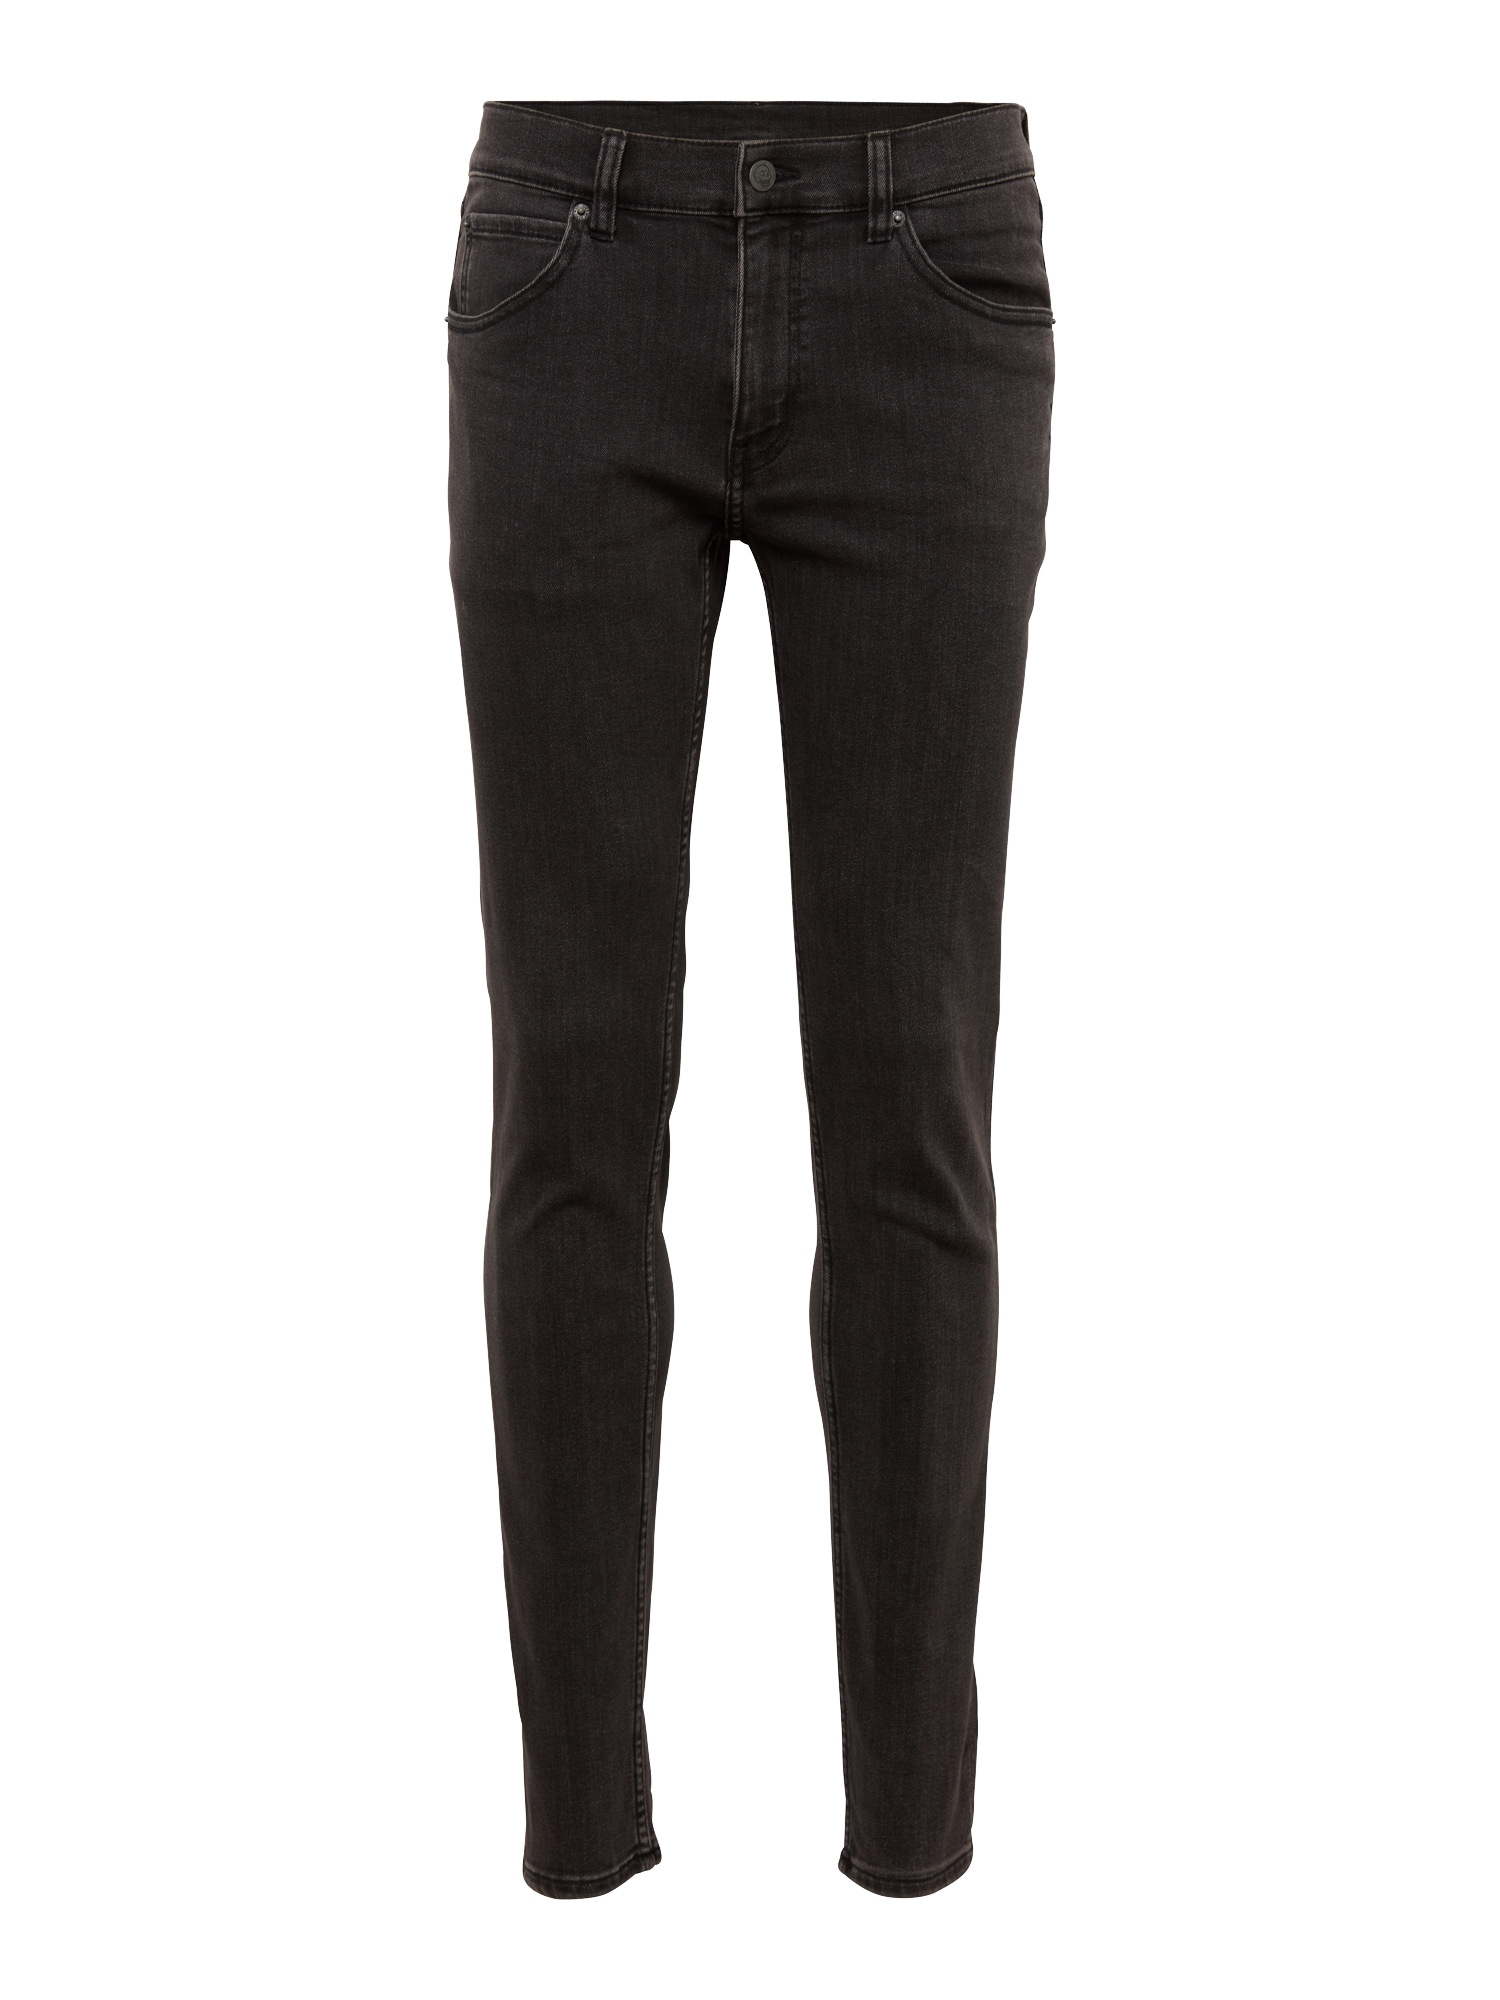 CHEAP MONDAY Heren Jeans Tight donkergrijs